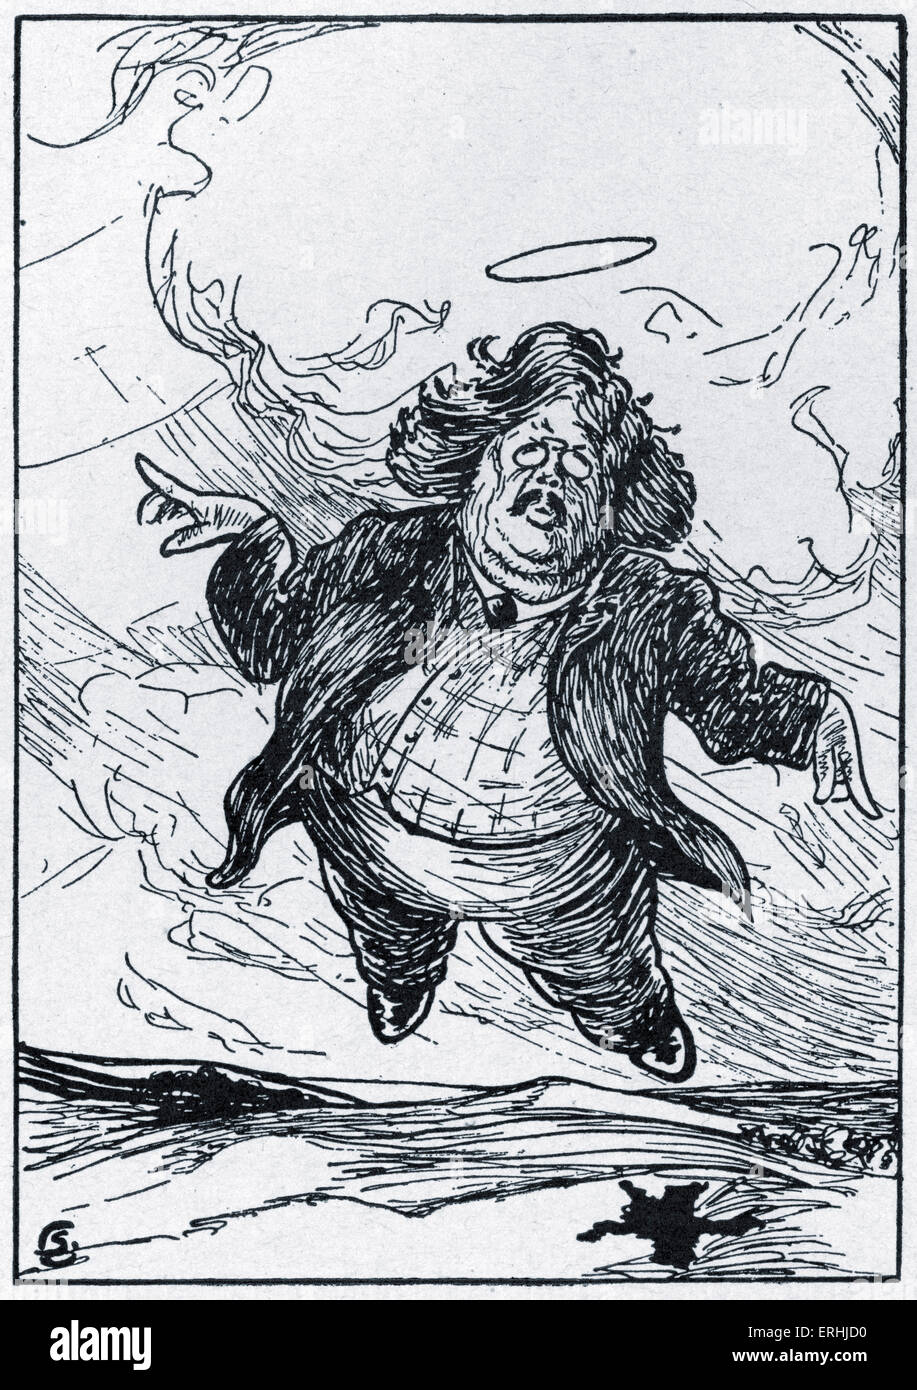 Gilbert Keith Chesterton - caricature of the English writer by G. Kohen, 1912. 29 May 1874 - 14 June 1936. - Stock Image